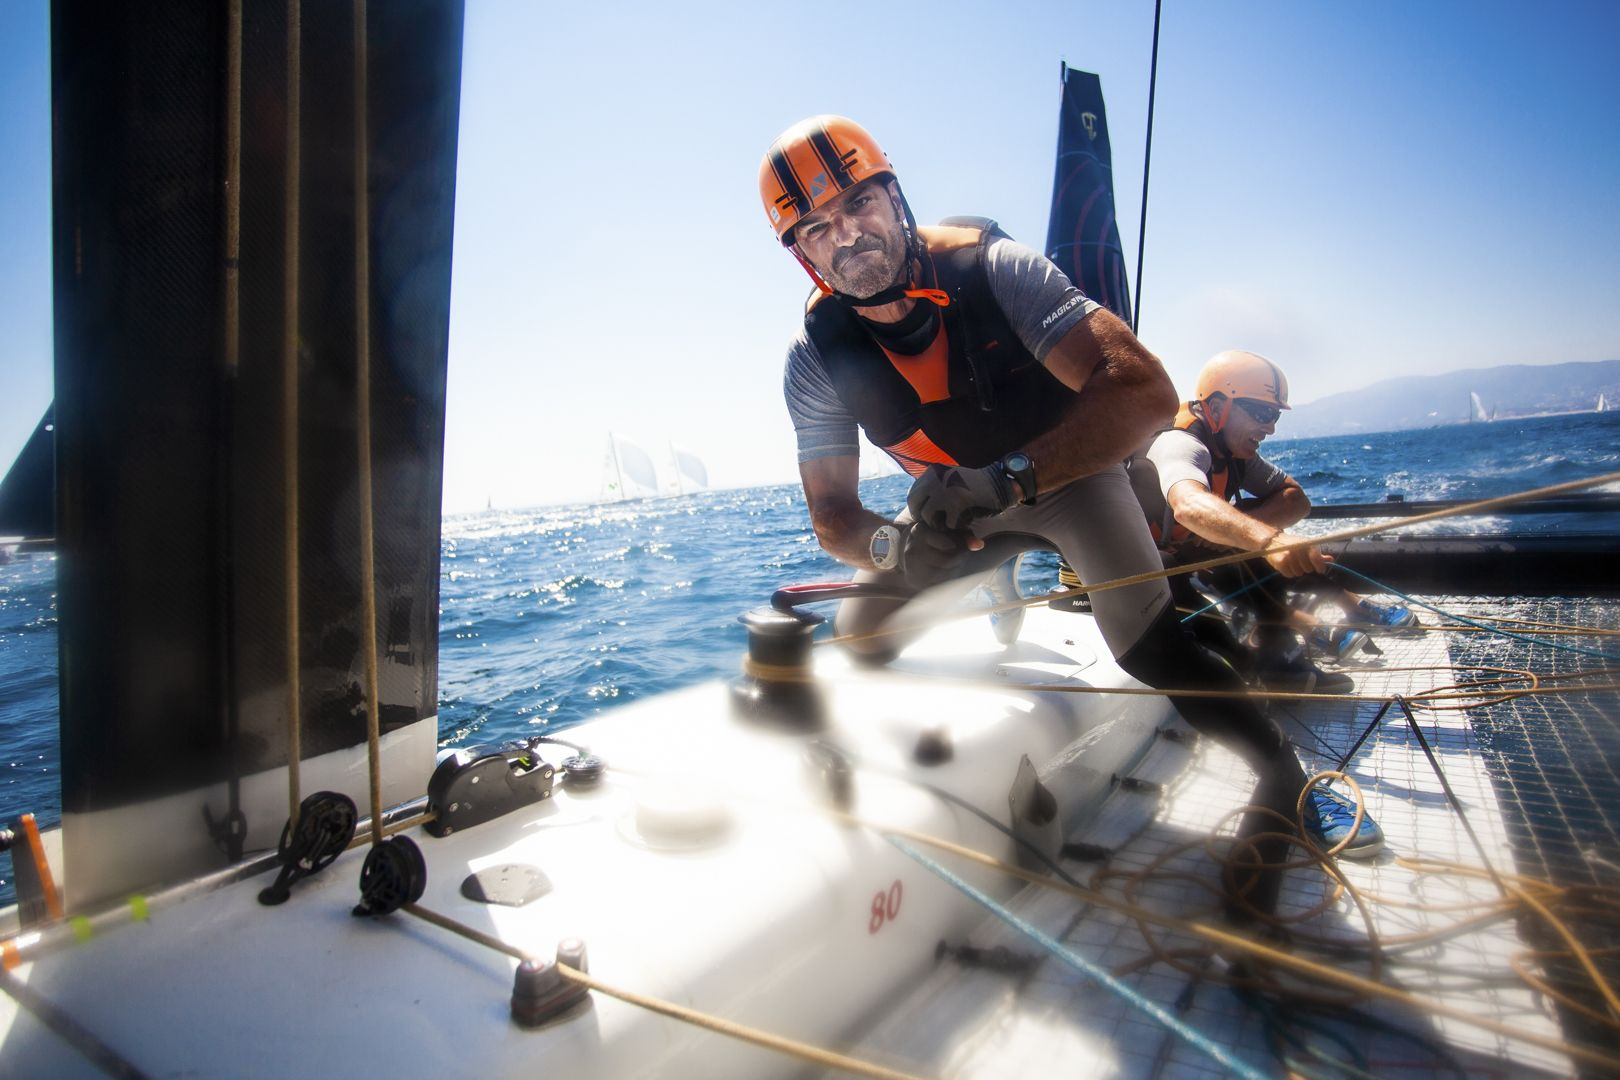 Third event of the 2018 GC32 Racing Tour, 37 Copa del Rey MAPFRE, run by Real Club Nautico de Palma. GC32 Racing Tour, 37TH COPA DEL REY MAPFRE. Photo © Tomás Moya / Sailing Energy / GC32 Racing Tour